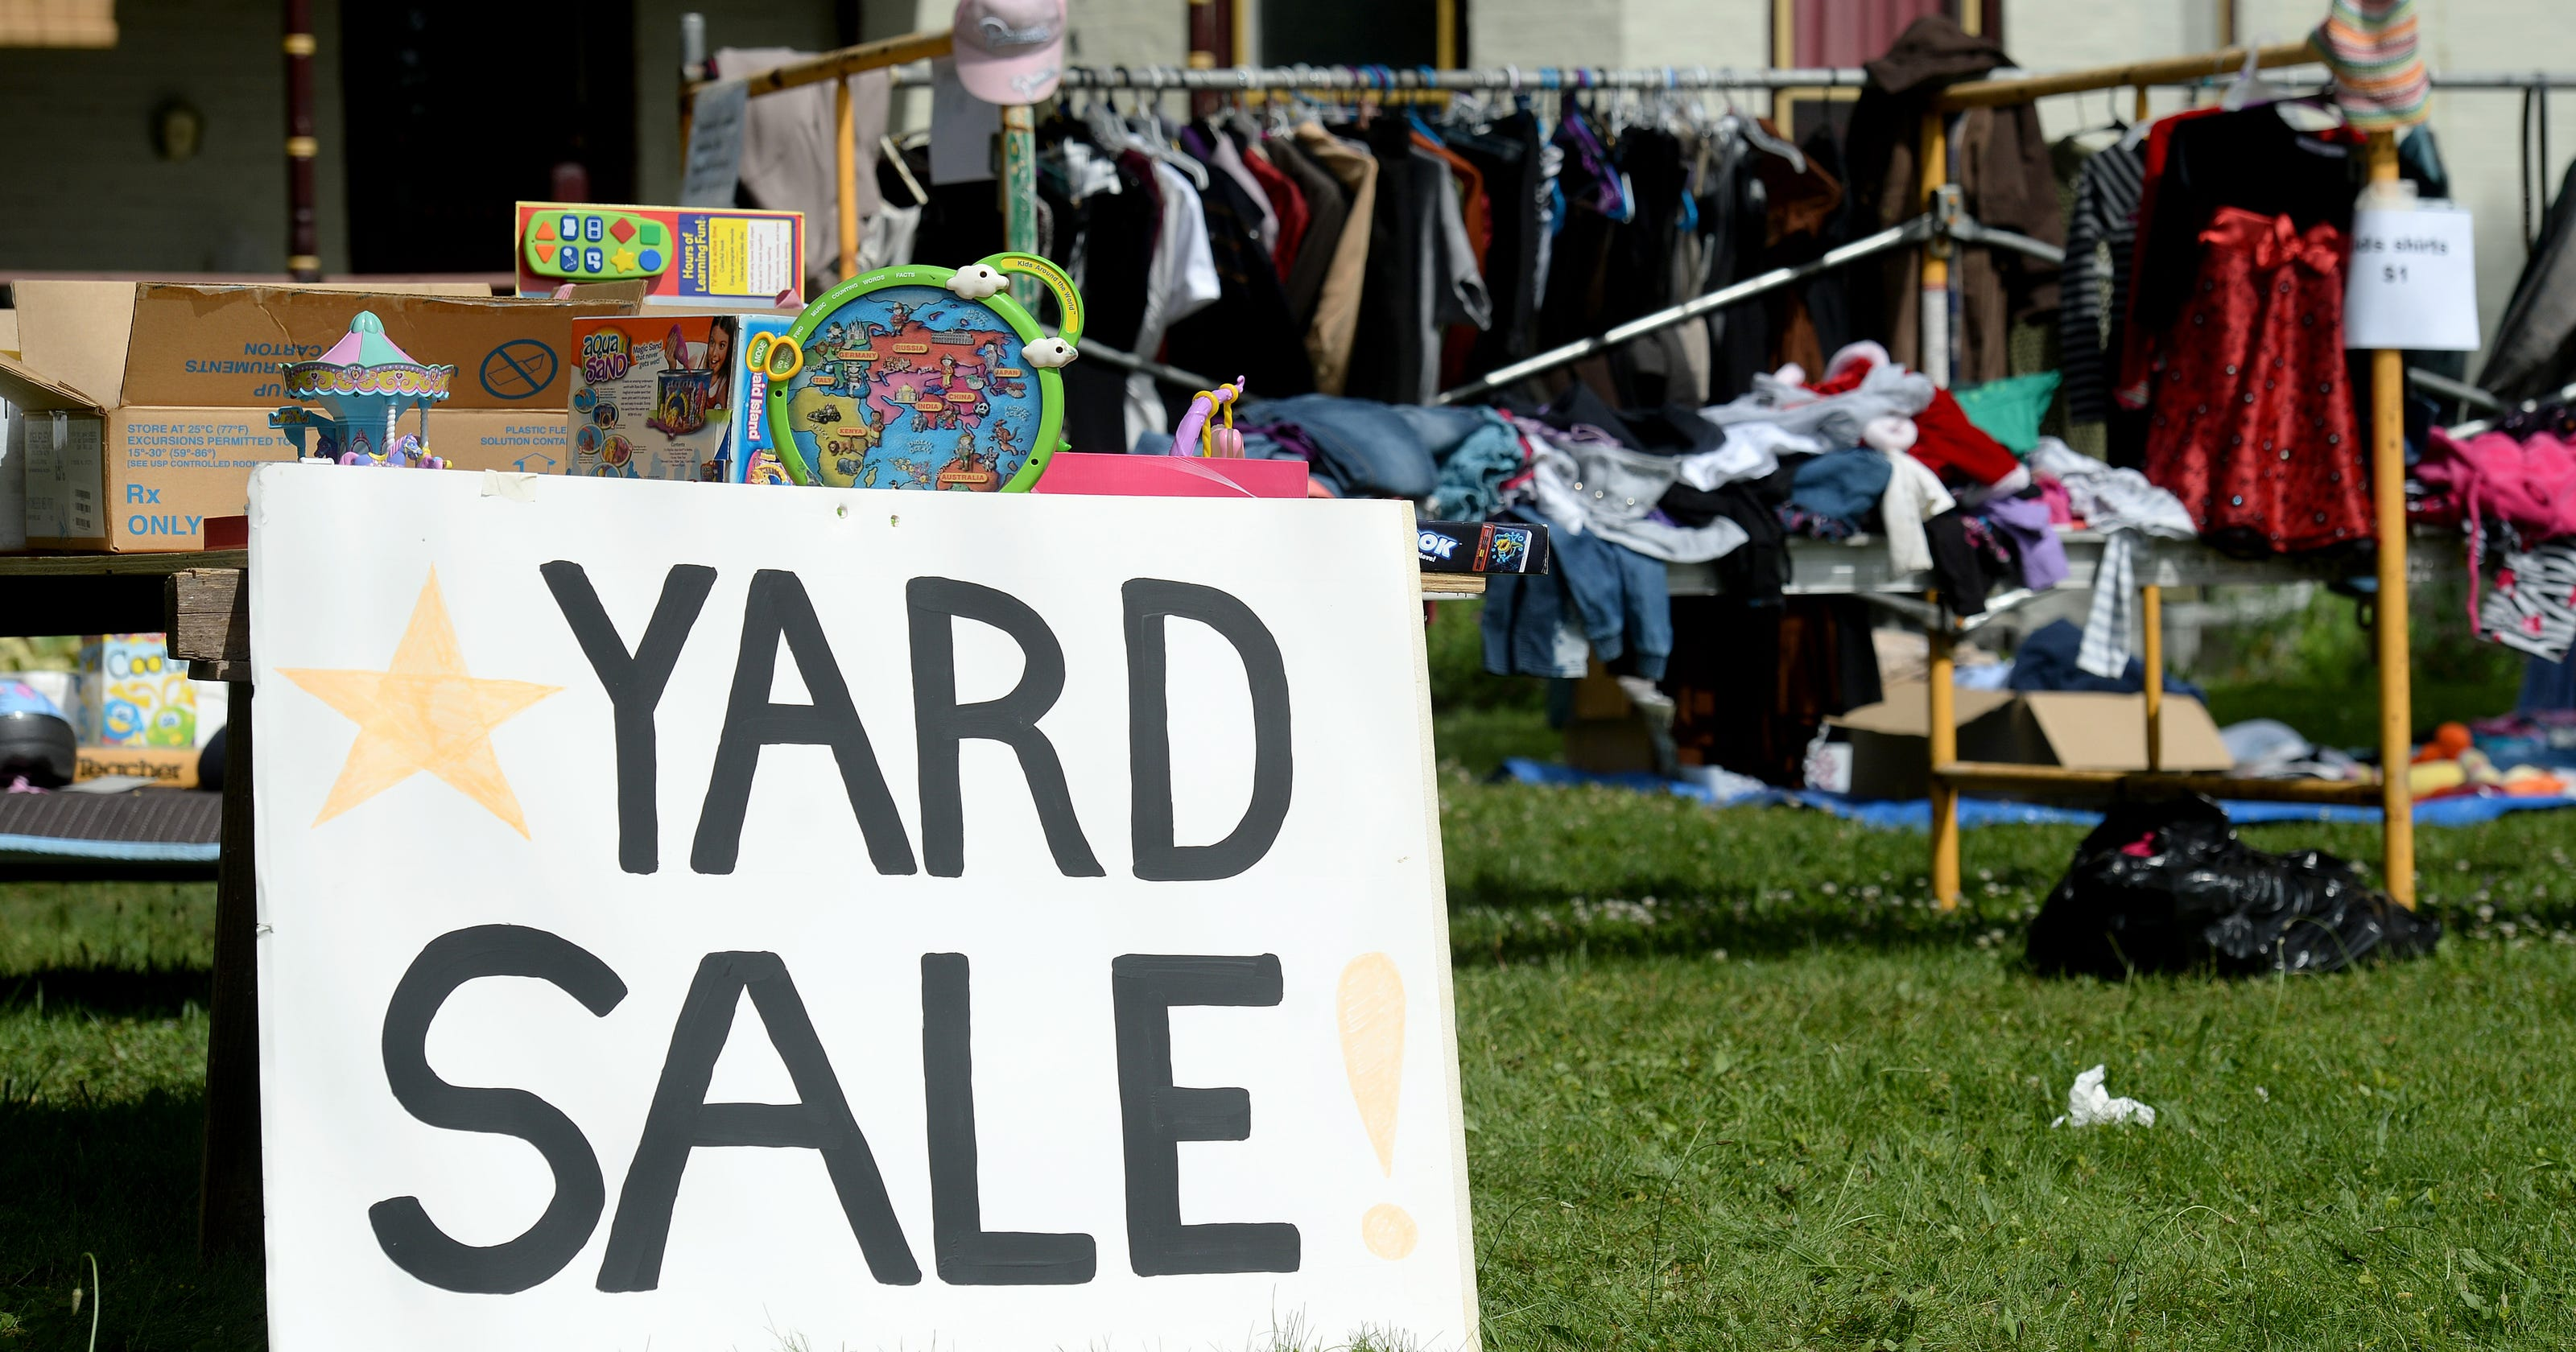 Historic National Road Yard Sale ready to take over U S  40 in Indiana